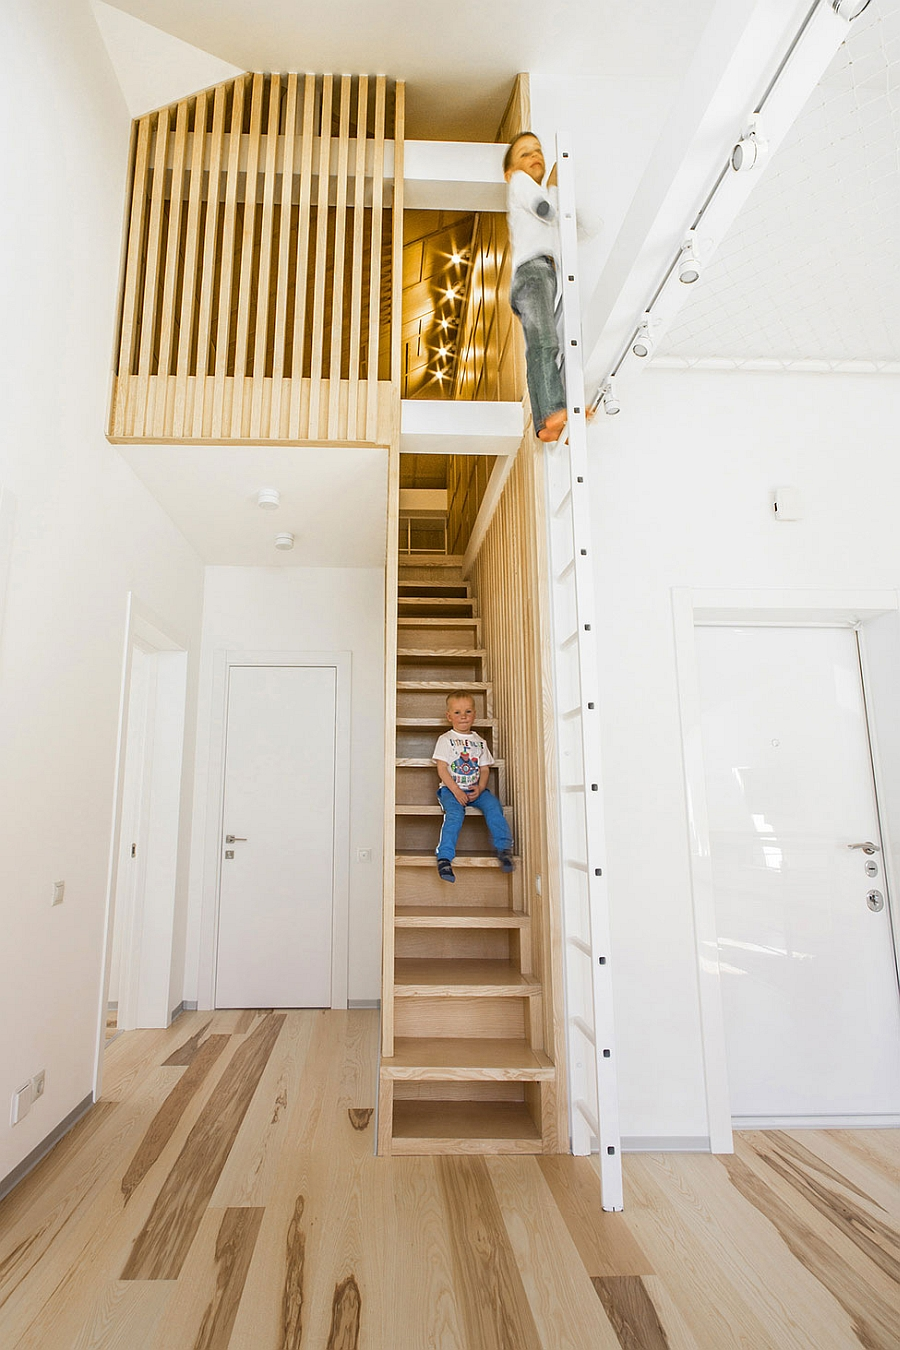 Add a ladder to give the interior a fun and playful appeal